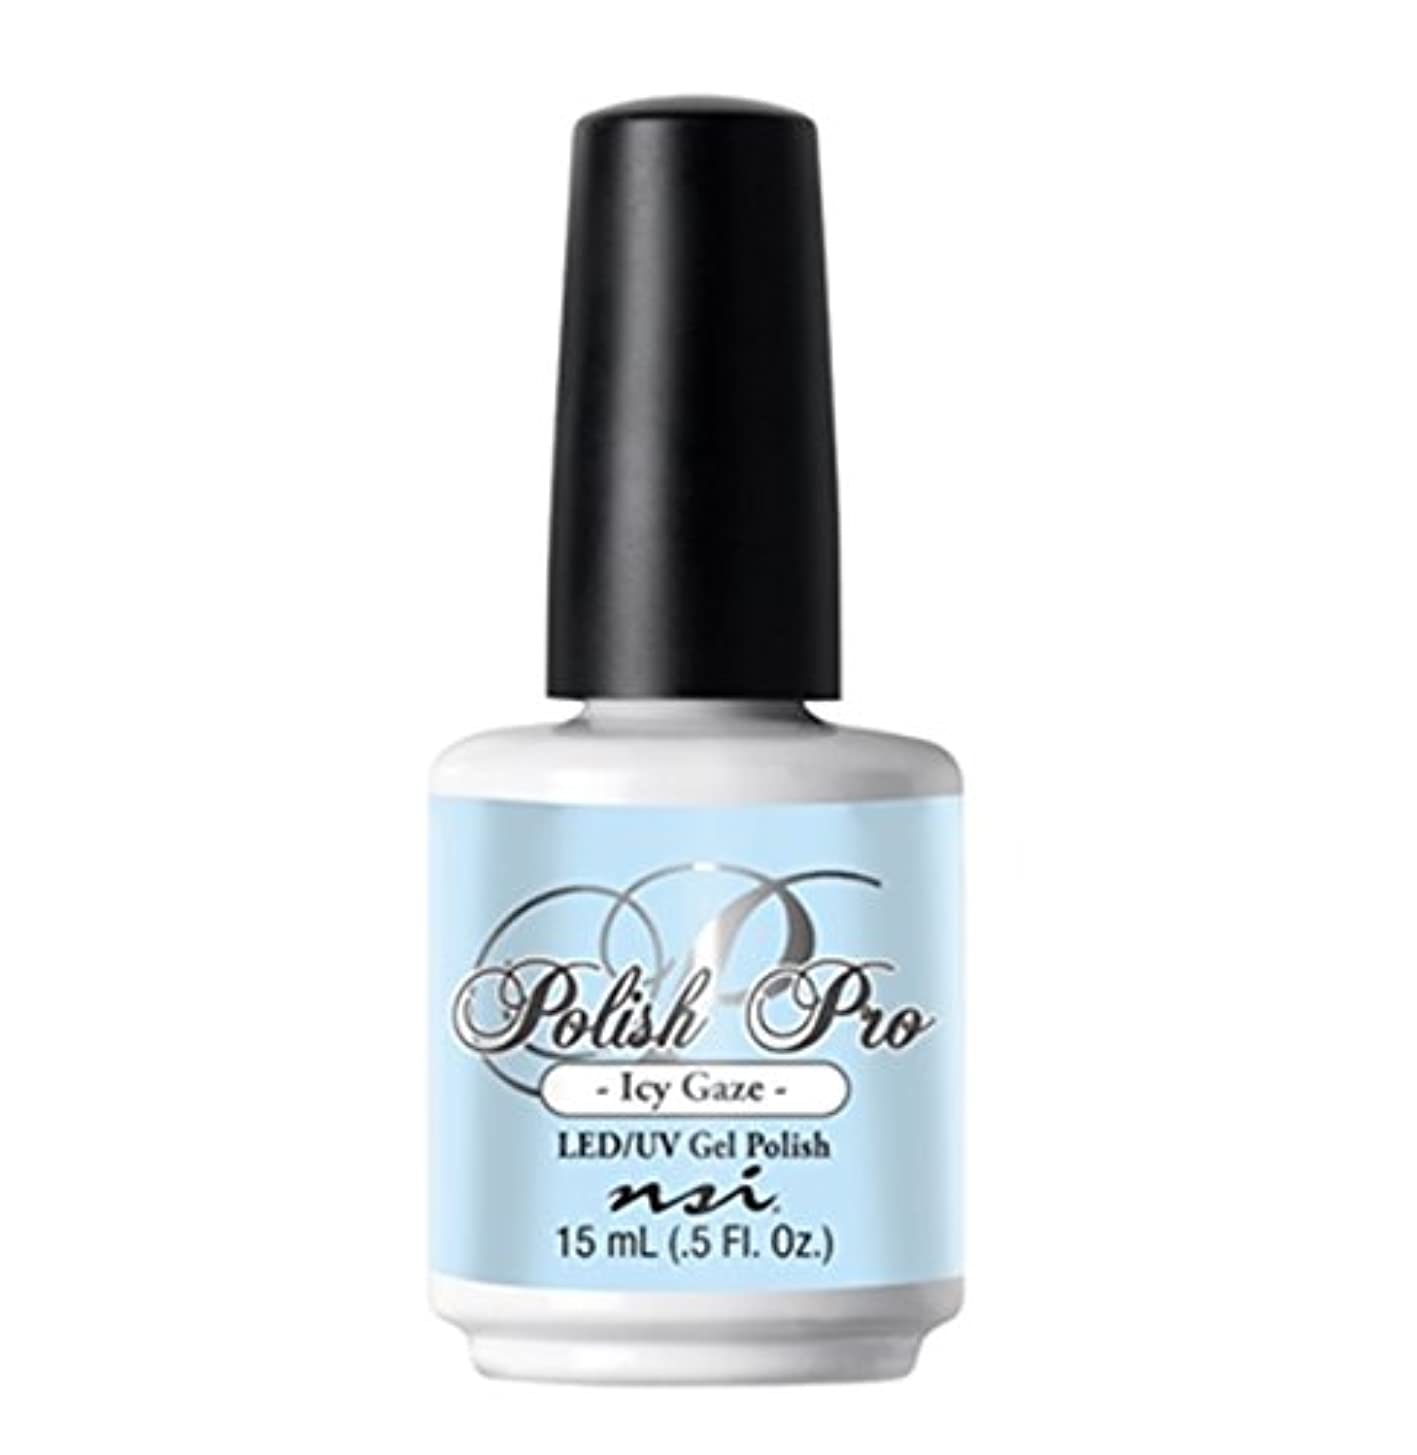 ライオン叱る贅沢NSI Polish Pro Gel Polish - The Ice Queen Collection - Icy Gaze - 15 ml/0.5 oz